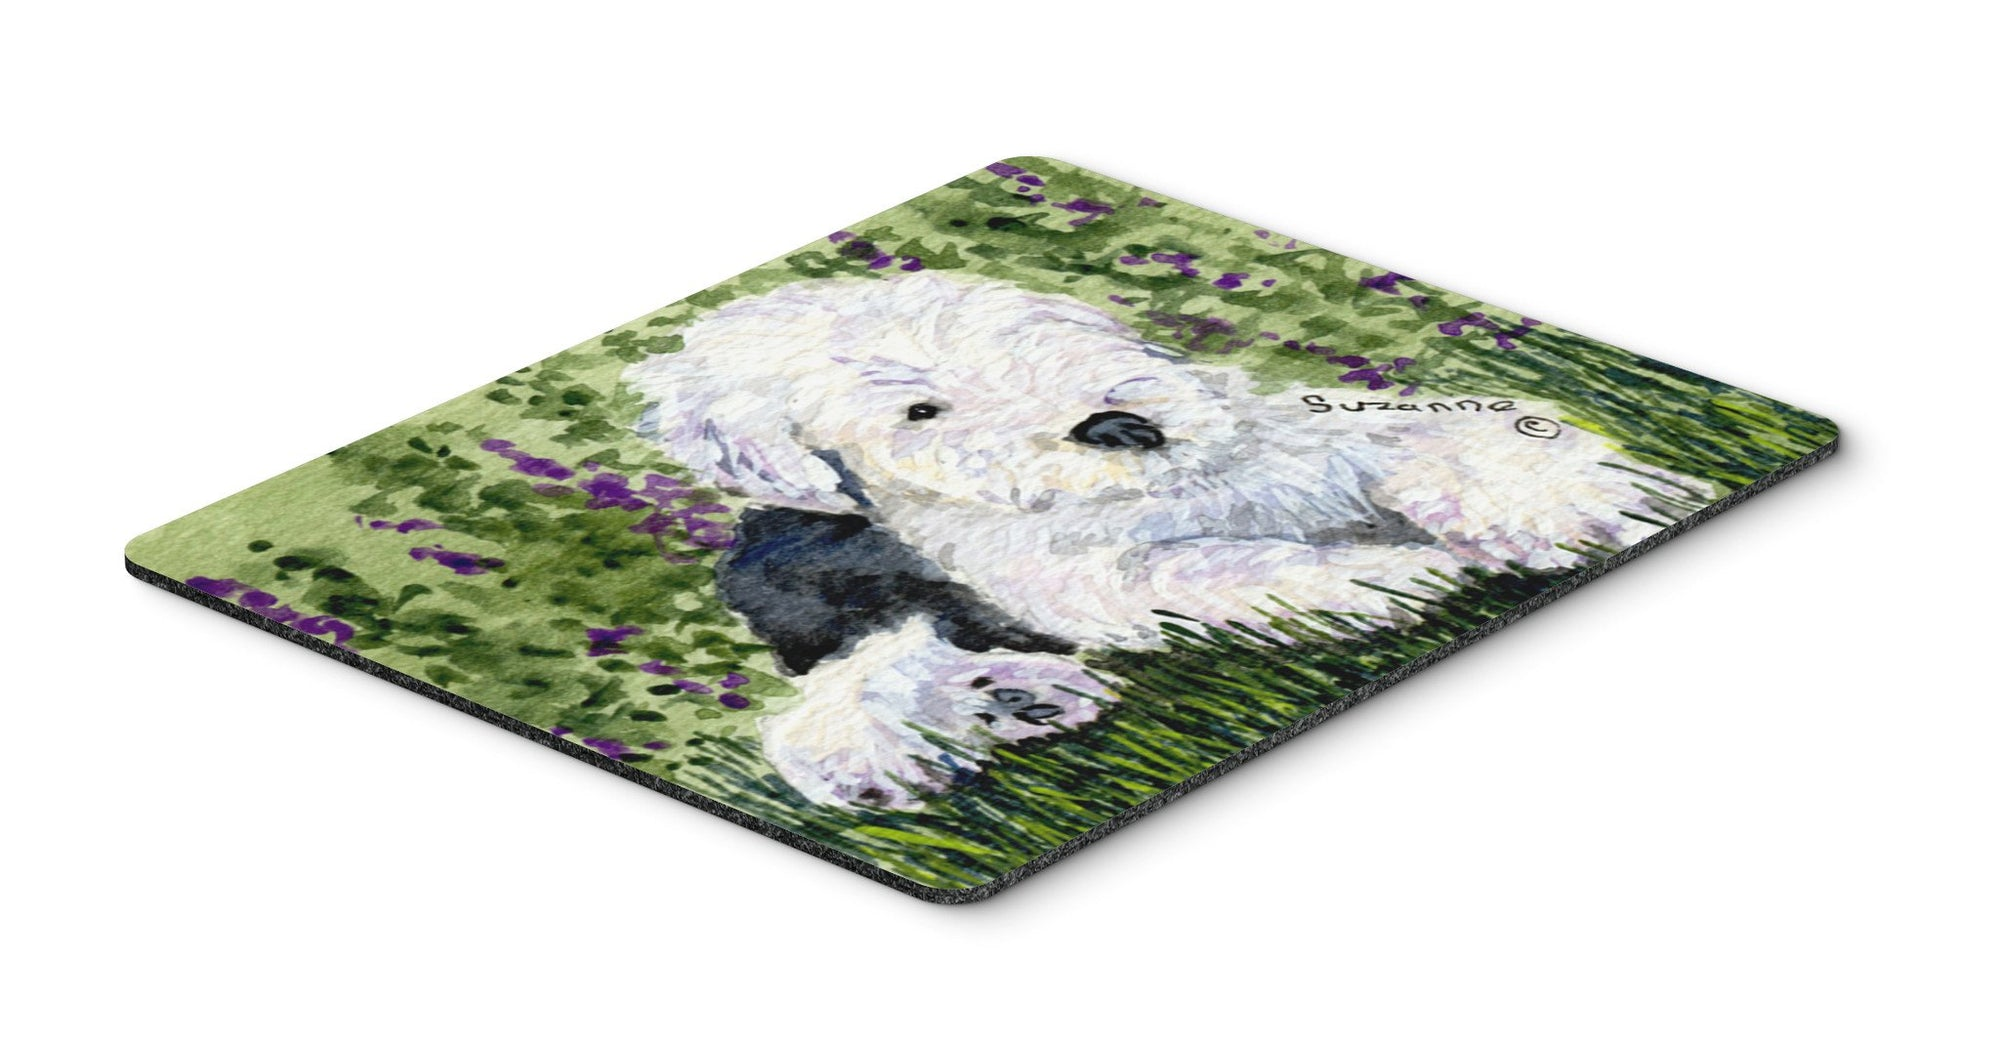 Old English Sheepdog Mouse pad, hot pad, or trivet by Caroline's Treasures